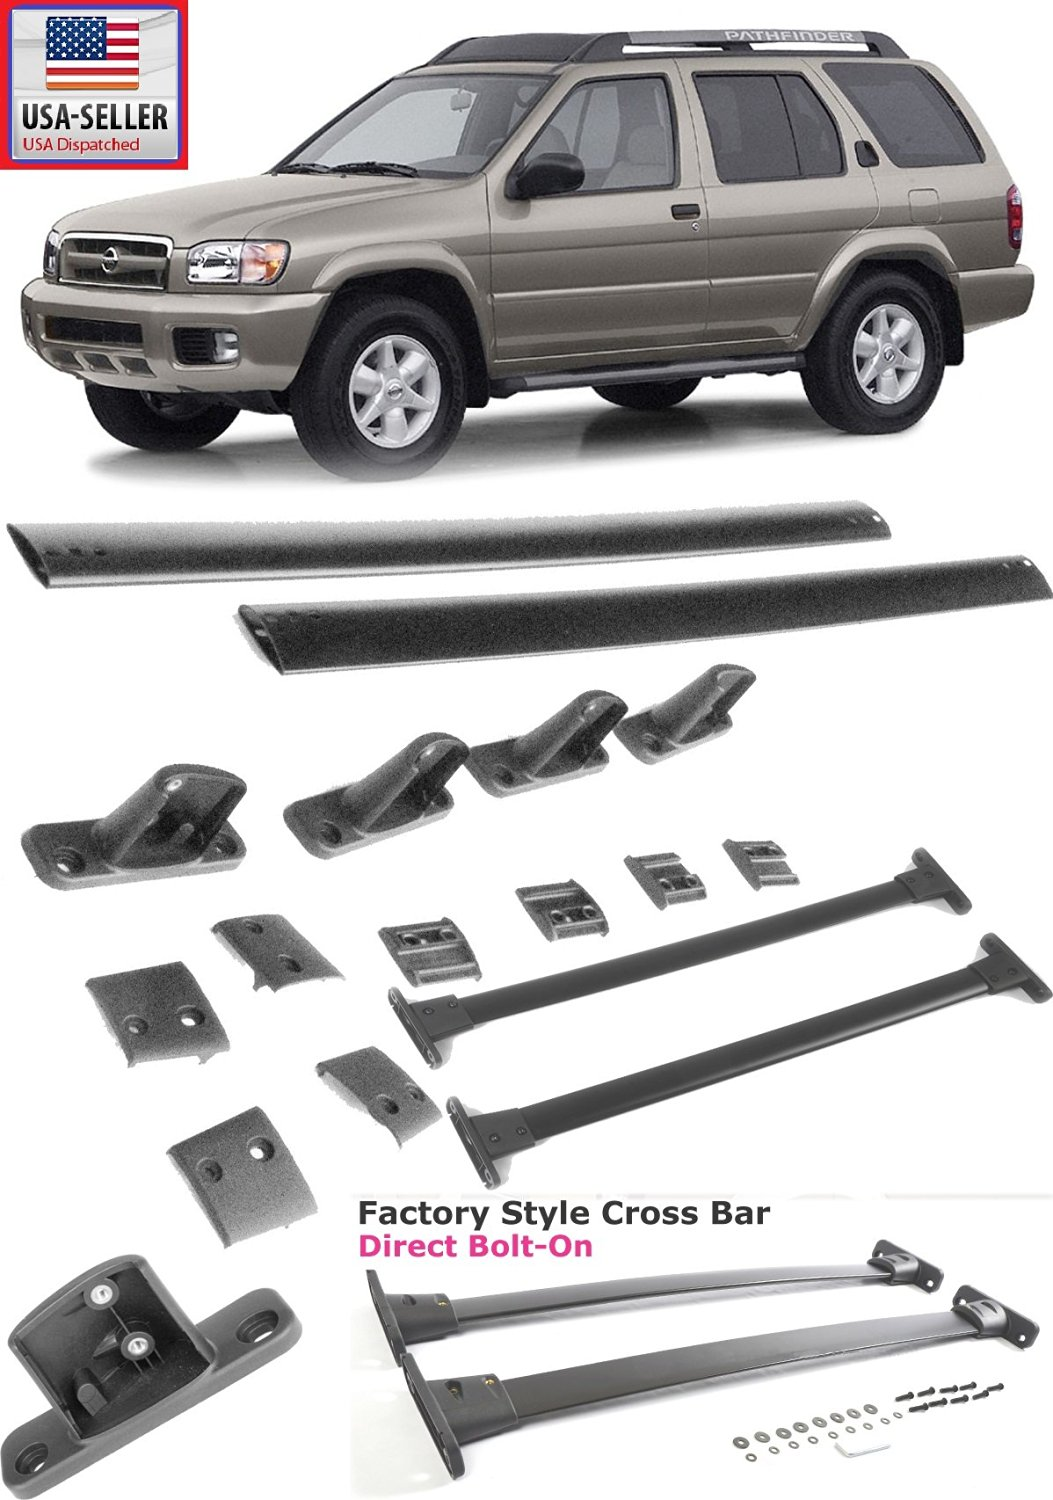 05-12 Nissan Pathfinder Black Roof Top Rack Rail Cross Bar Luggage Carrier 2PCS only 2005 2006 2007 2008 2009 2010 2011 2012